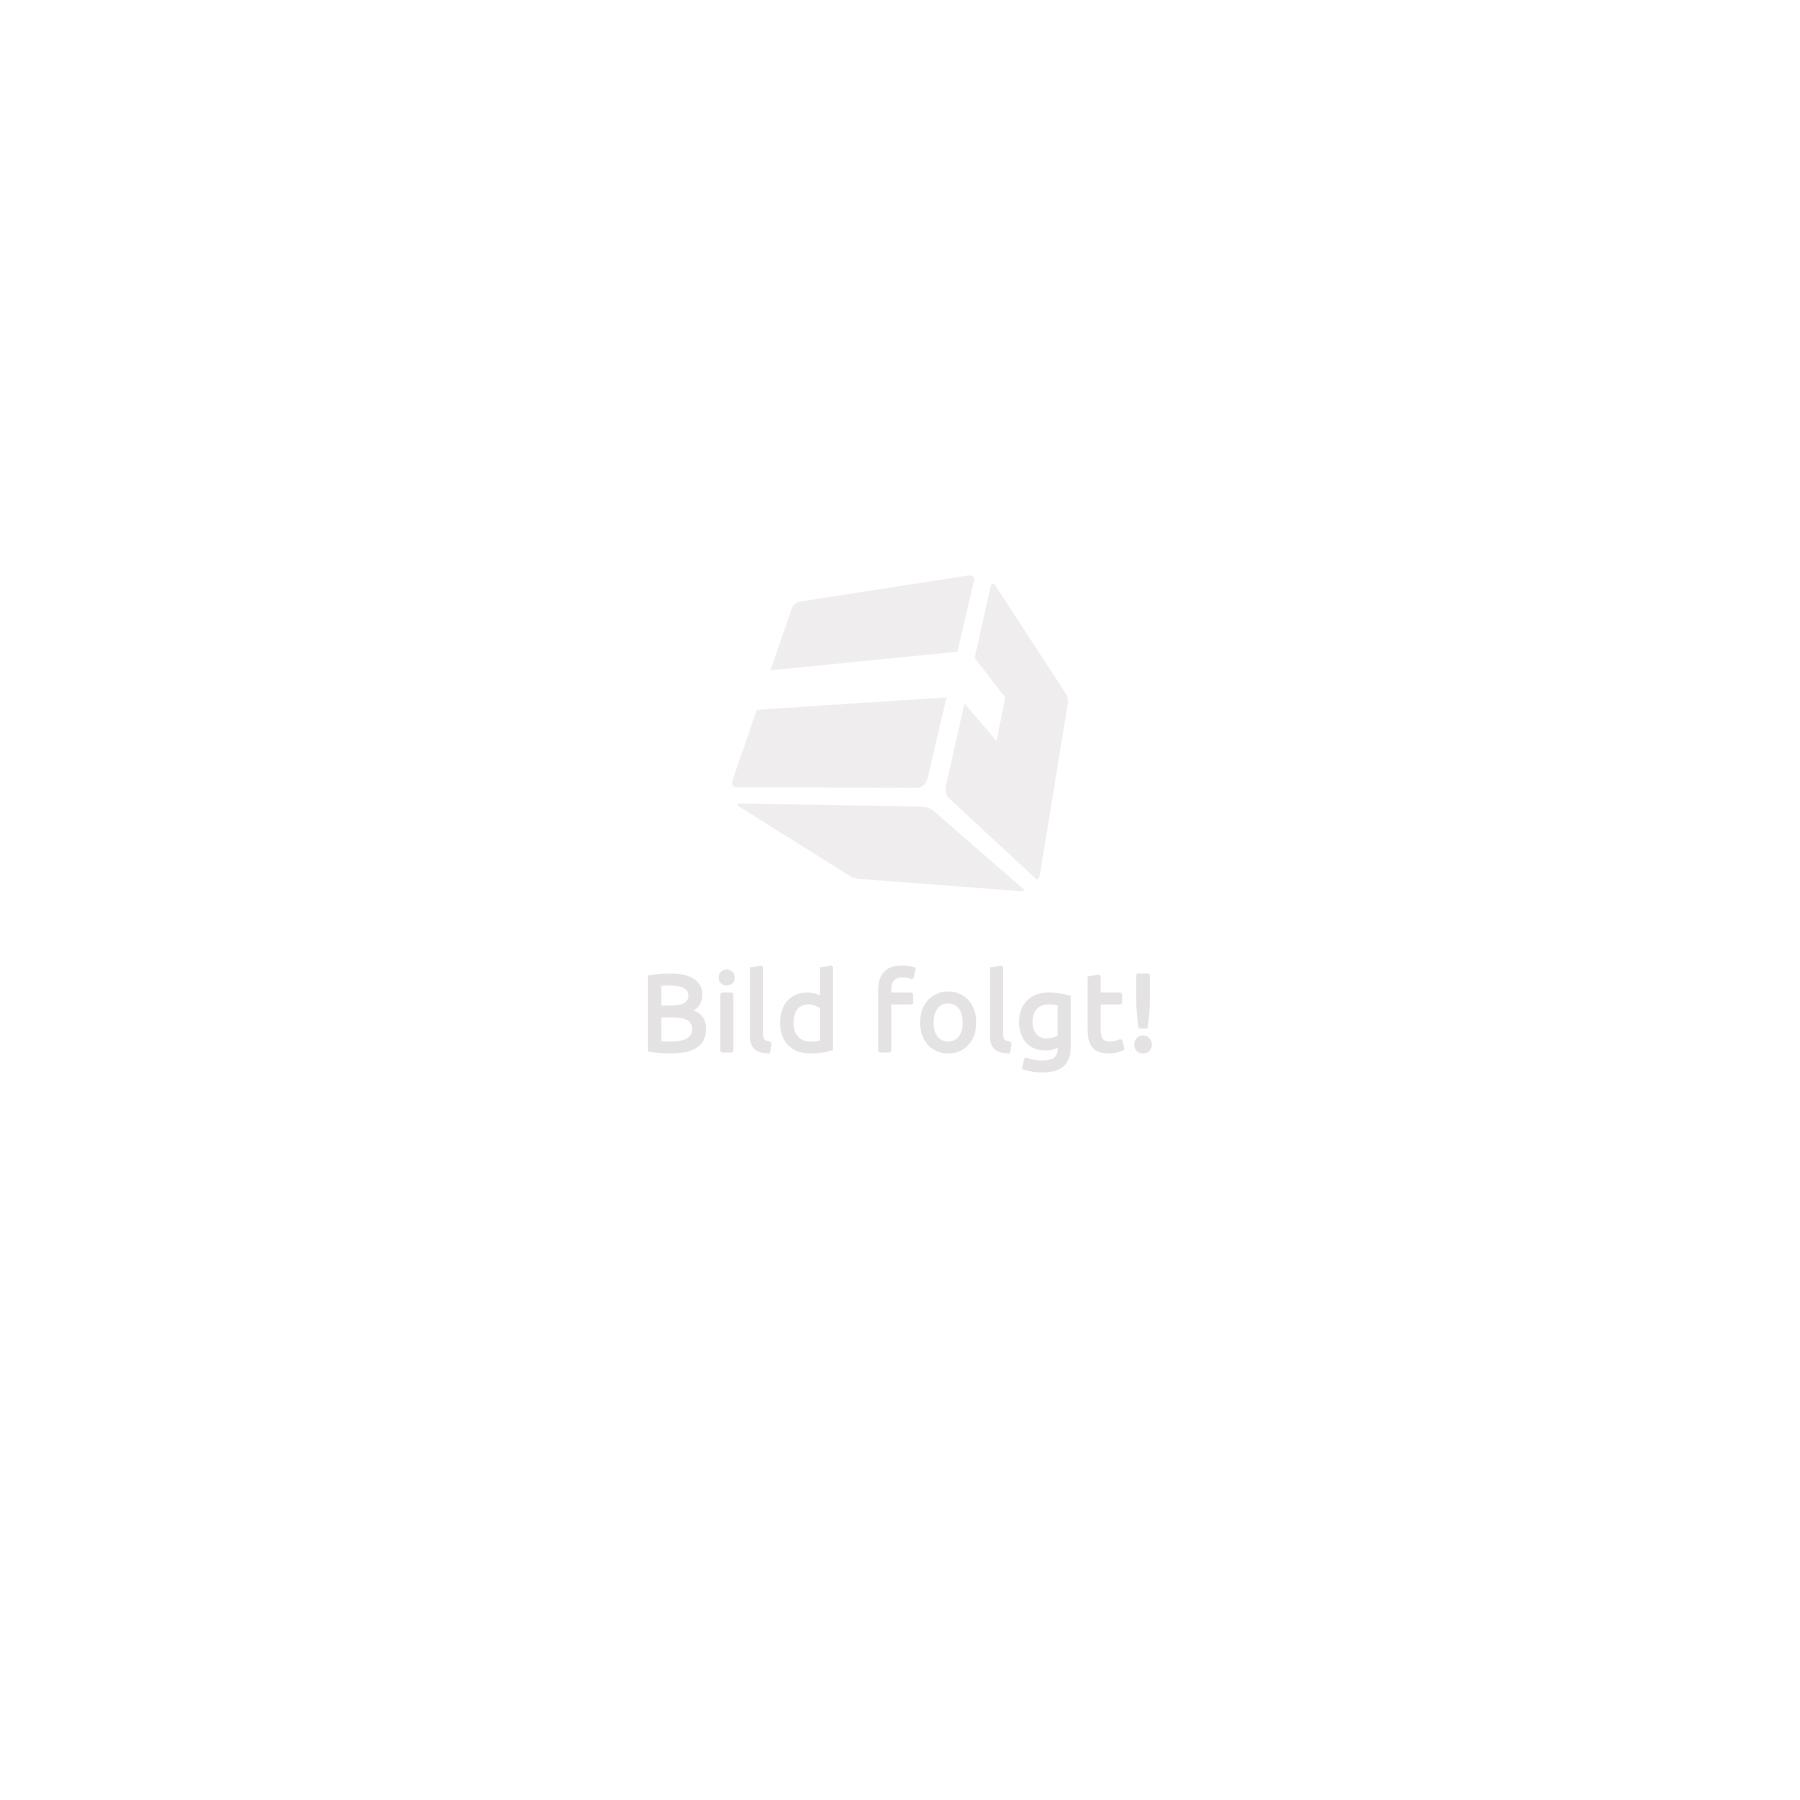 Crate rack for 6 beverage crates